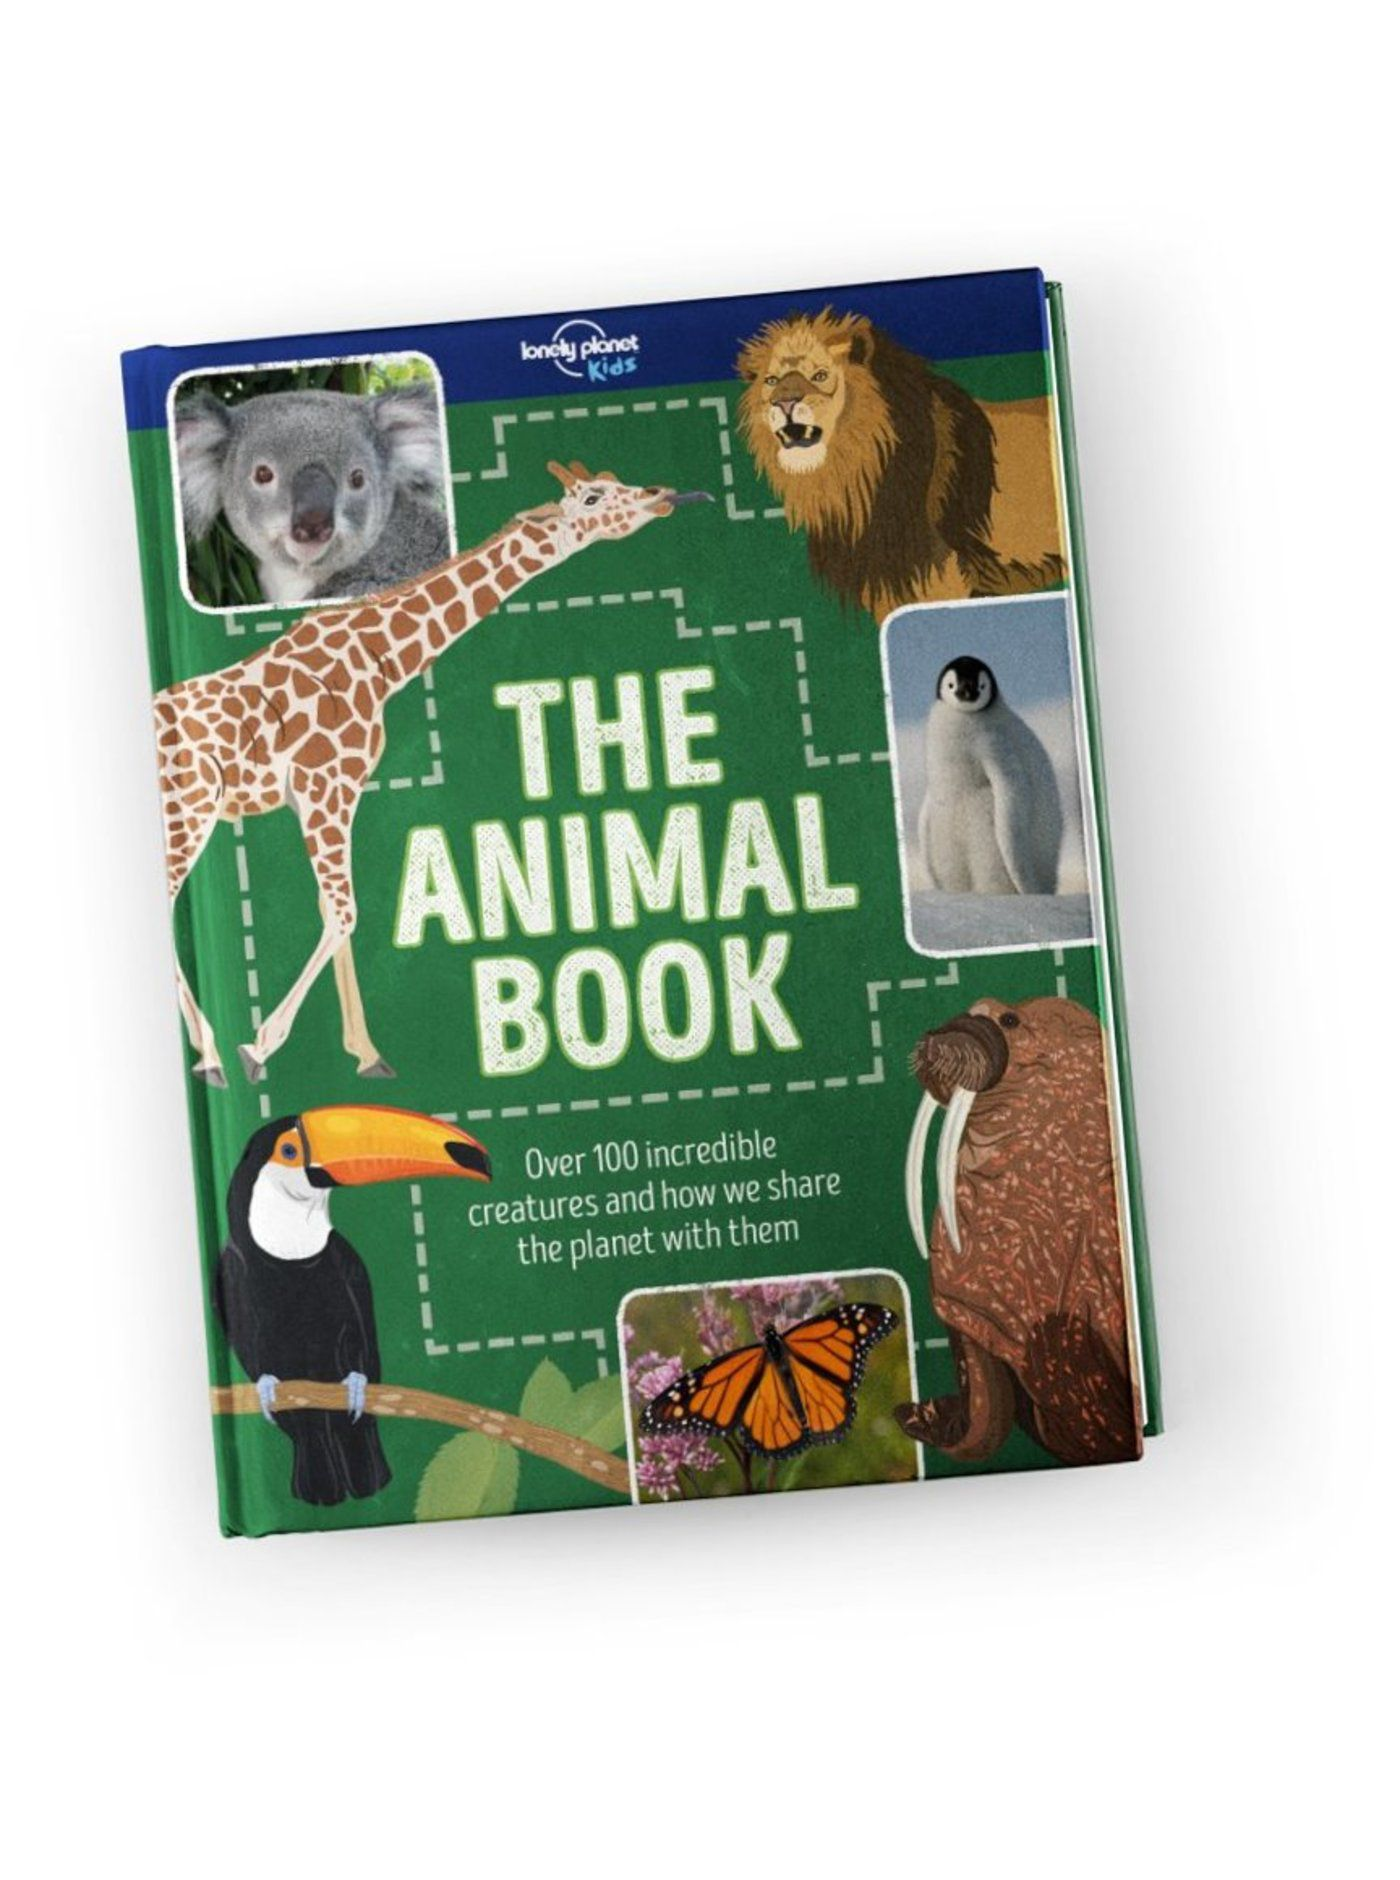 The Animal Book (North and South America edition)